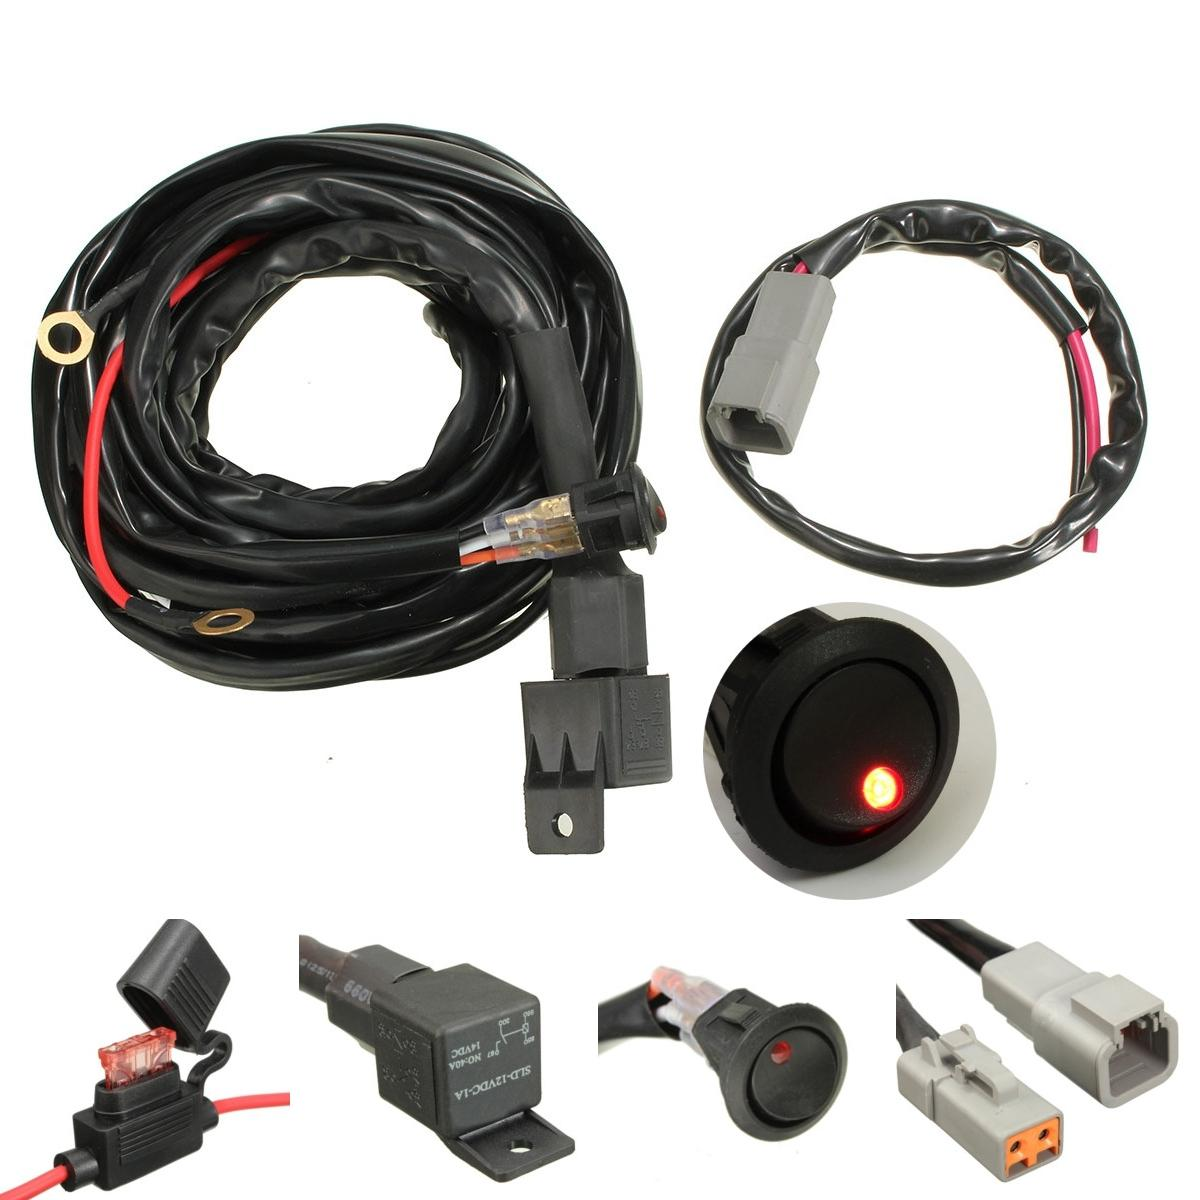 40A Relay 300cm Wiring Harness Kit ON OFF Switch For LED Spot ... on led wiring guide, led spark plug wires, led wiring panel, auxiliary controller wire harness, led wiring kit,